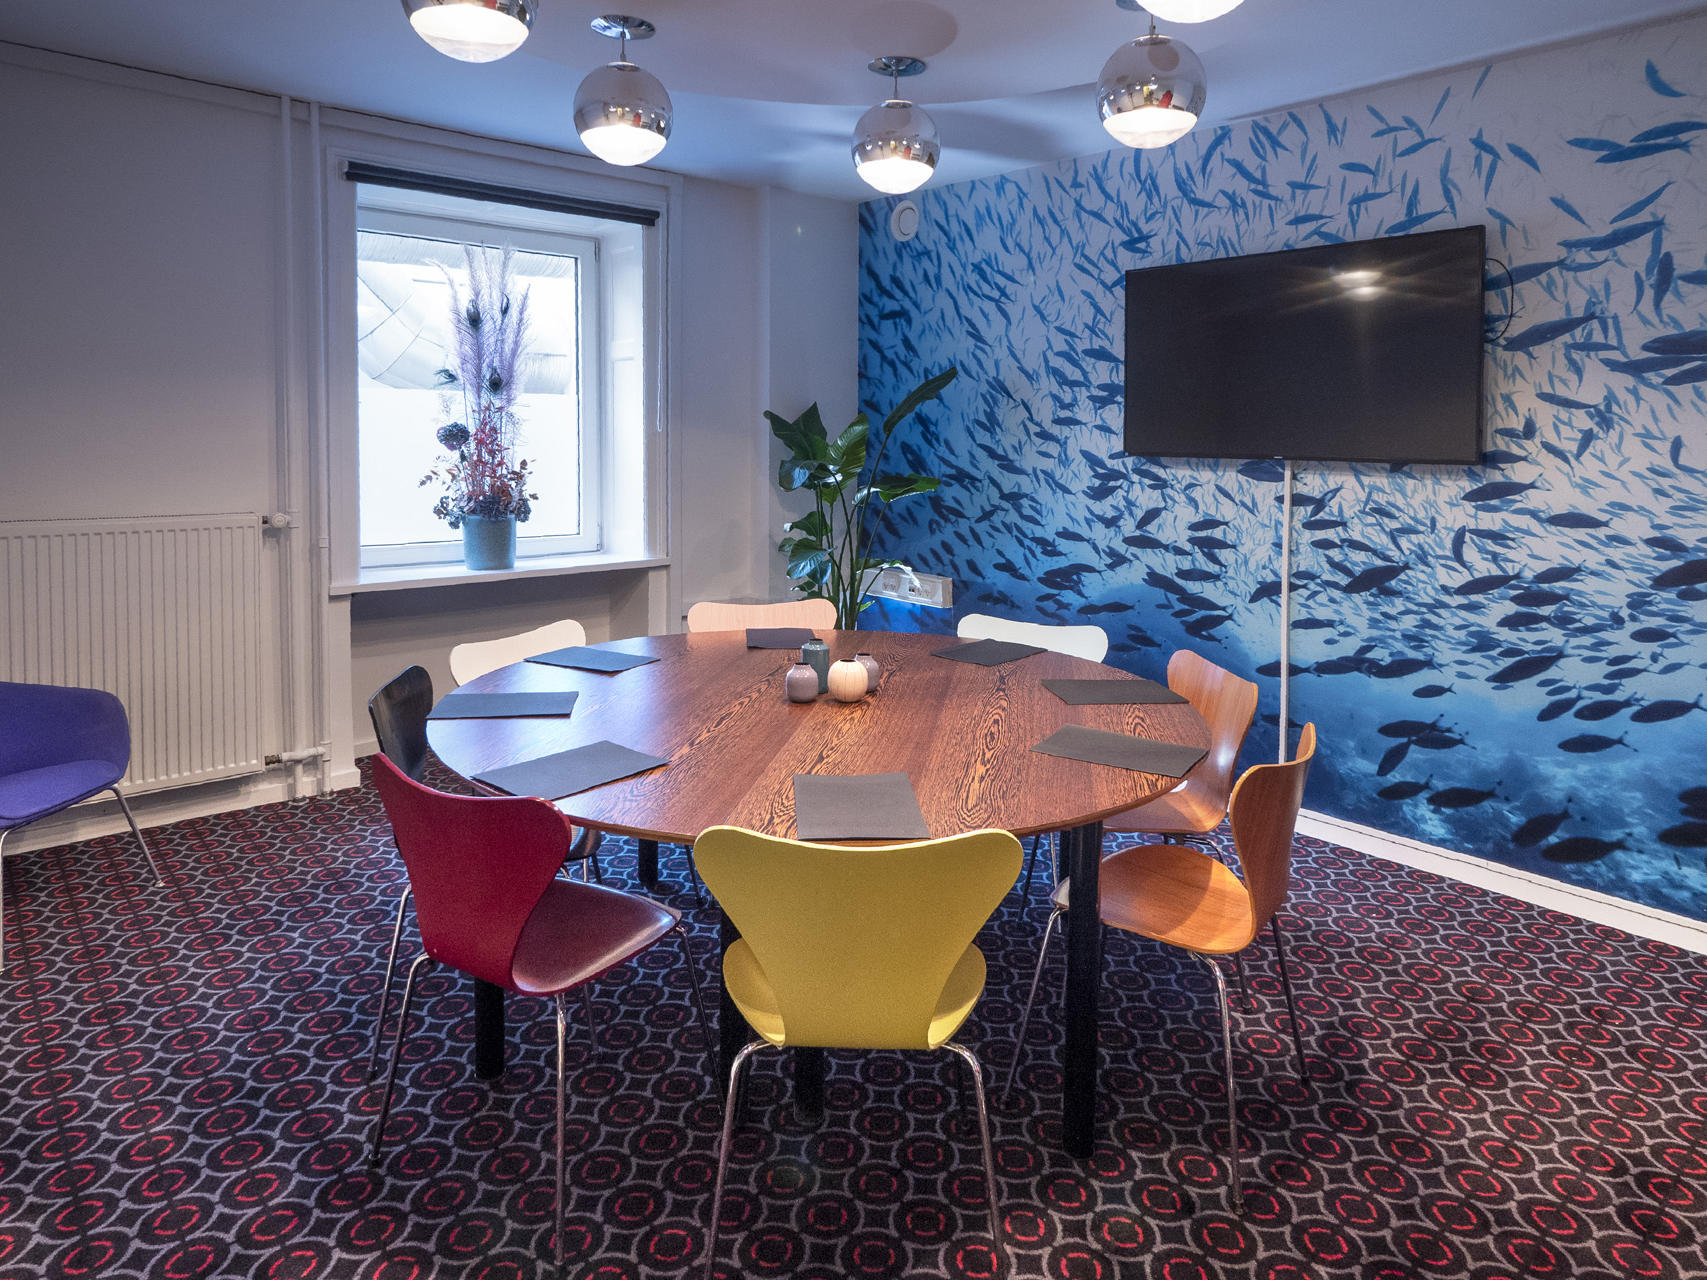 Board room at Hotel Twentyseven Copenhagen